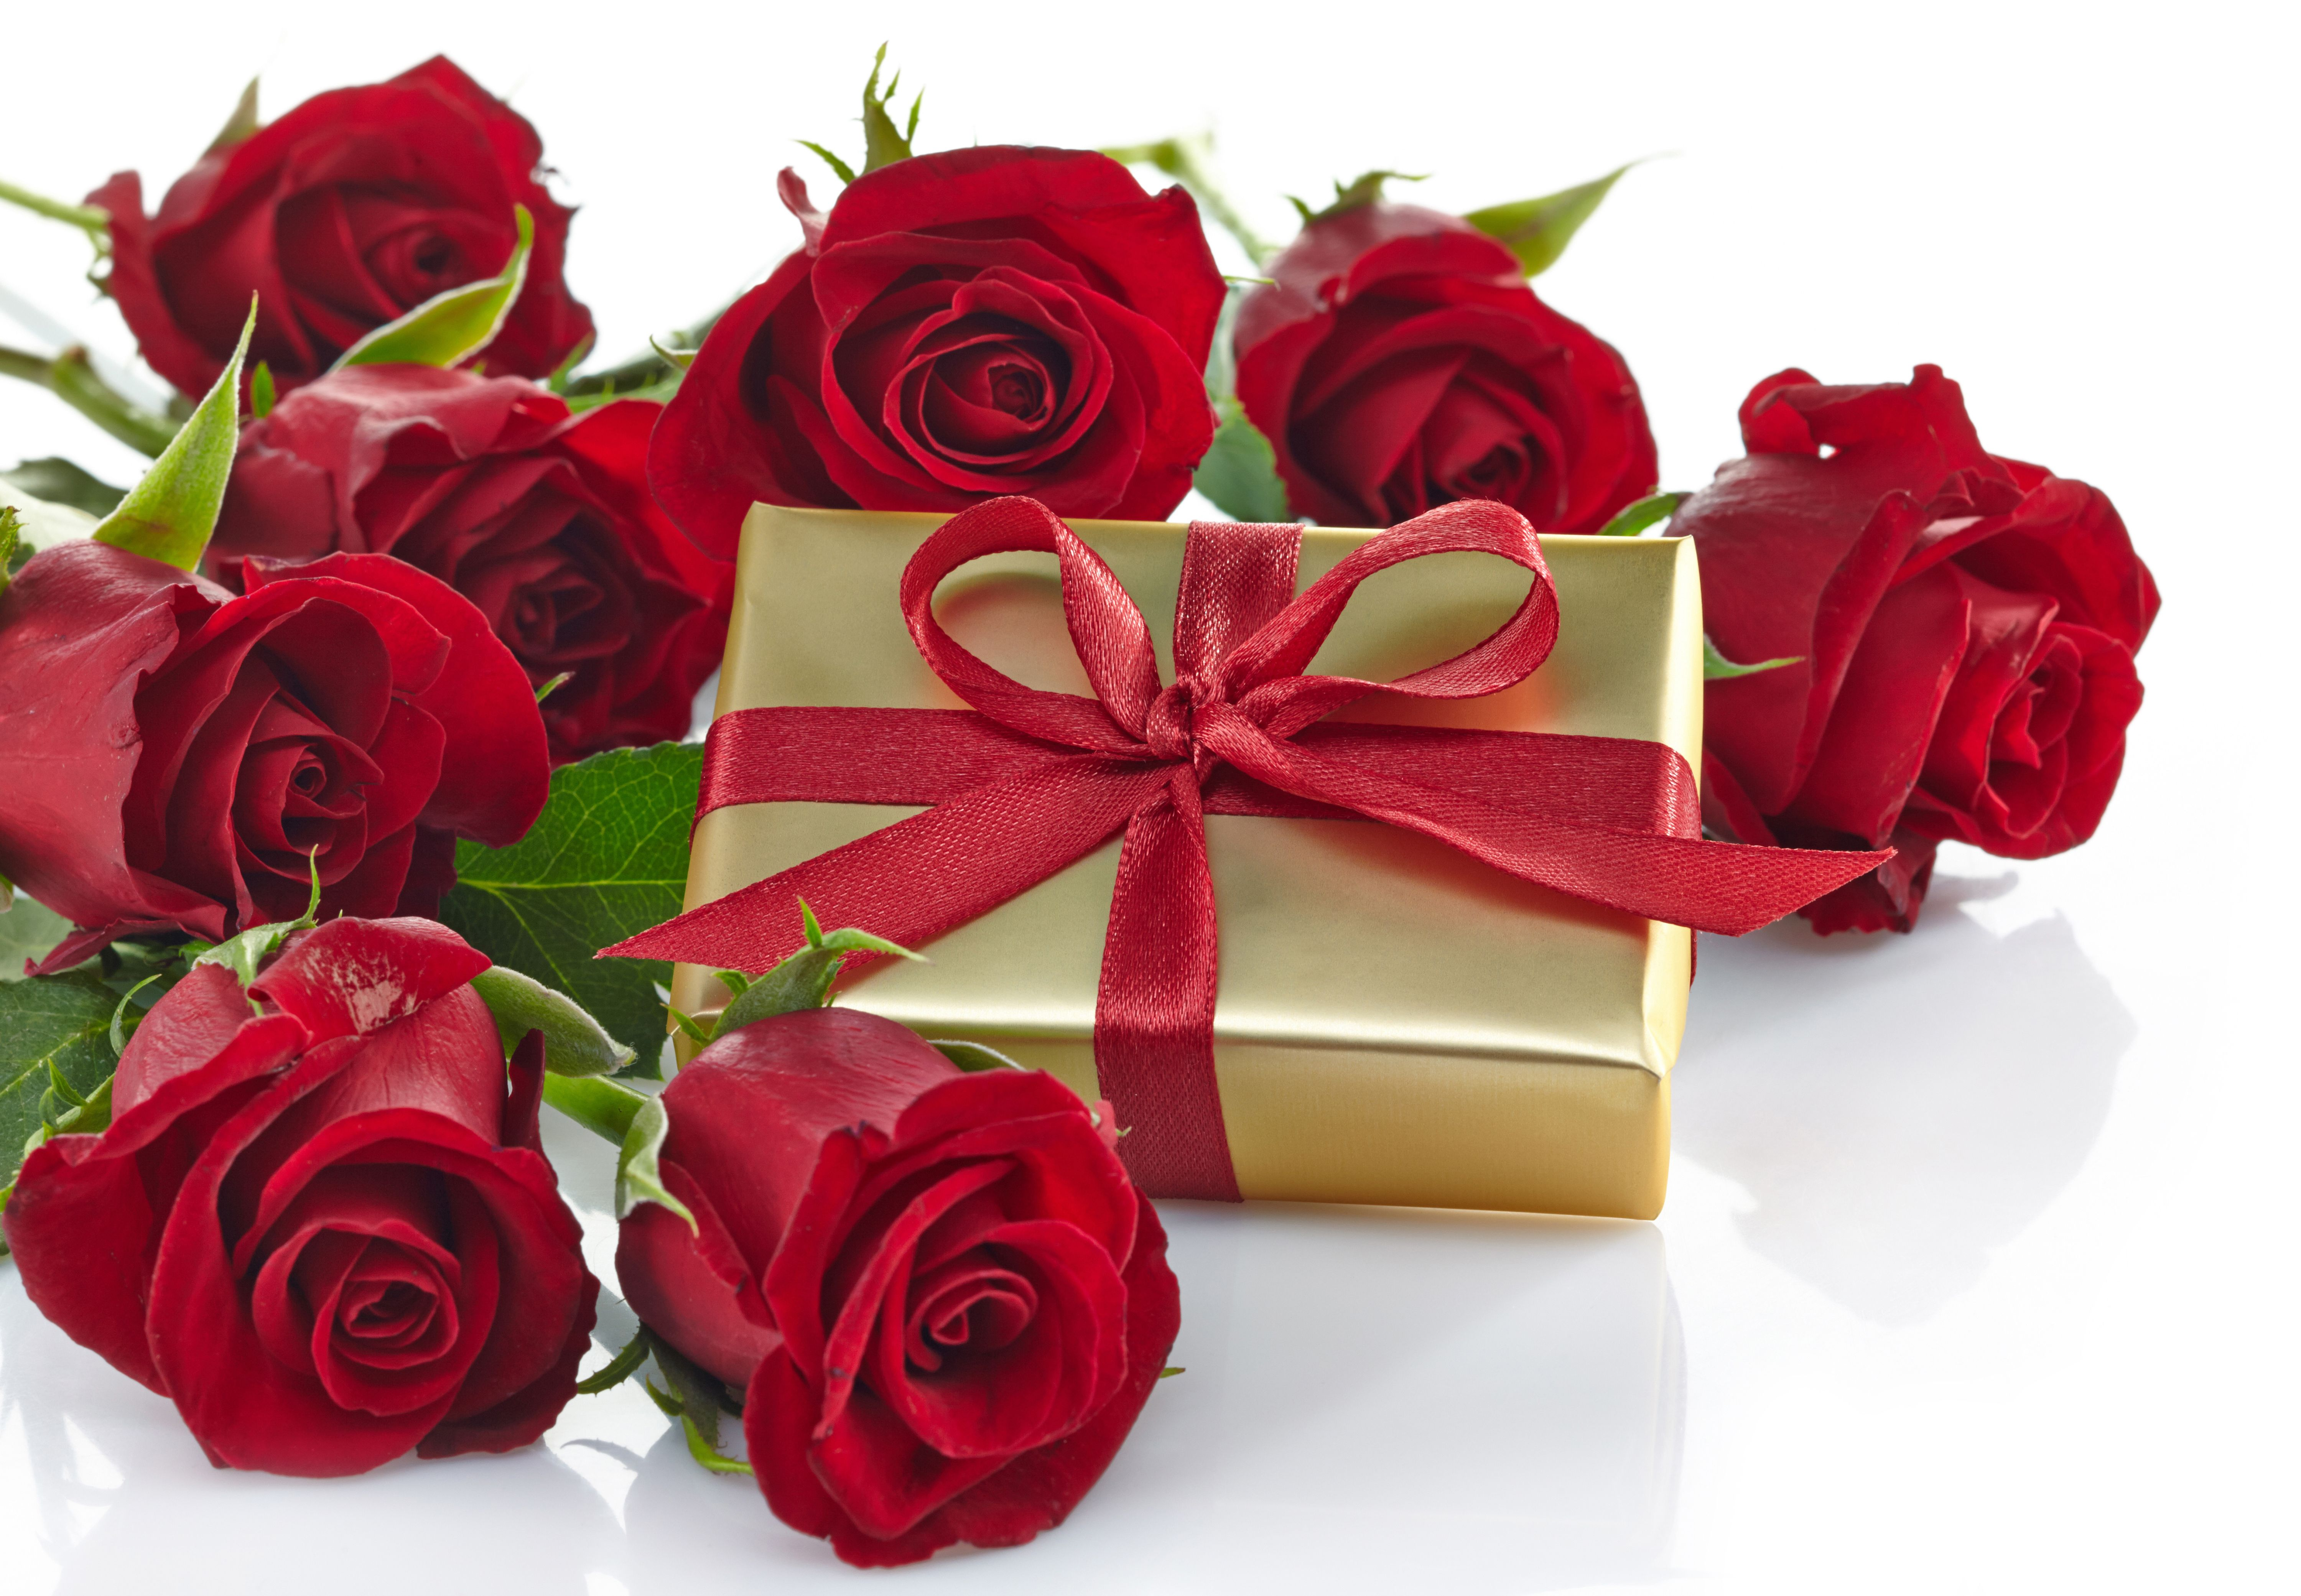 Gold Gift With Red Roses Background Red Roses Background Love Flowers Wallpaper Gold Gift